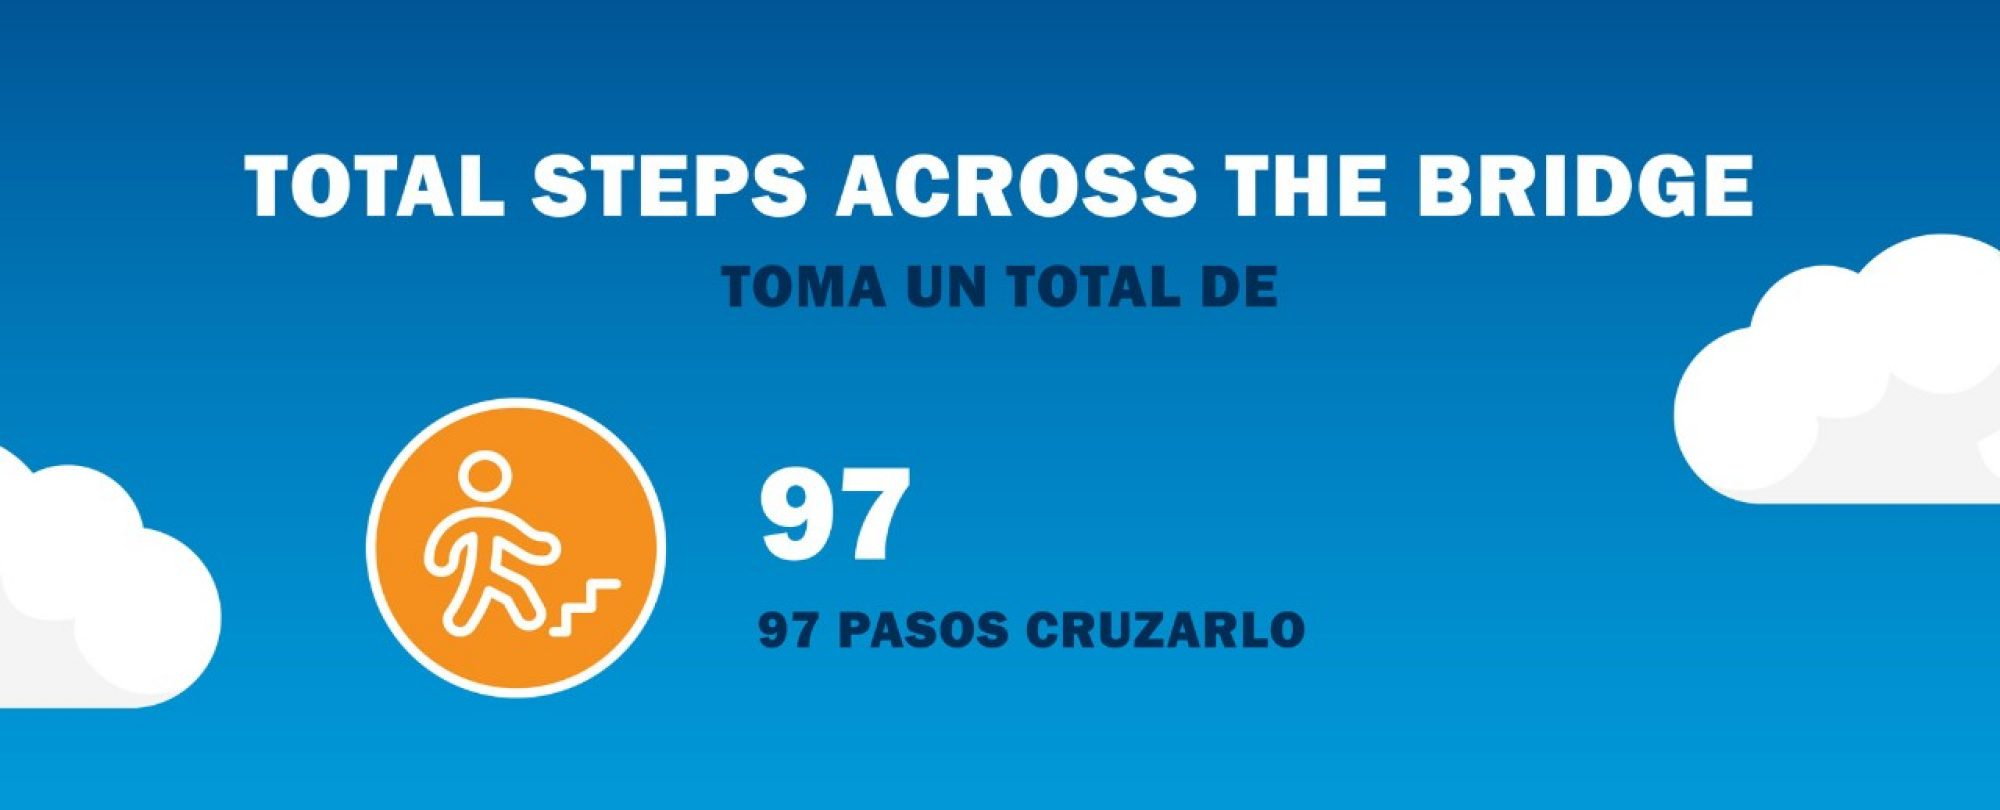 Total steps across the bridge: 97